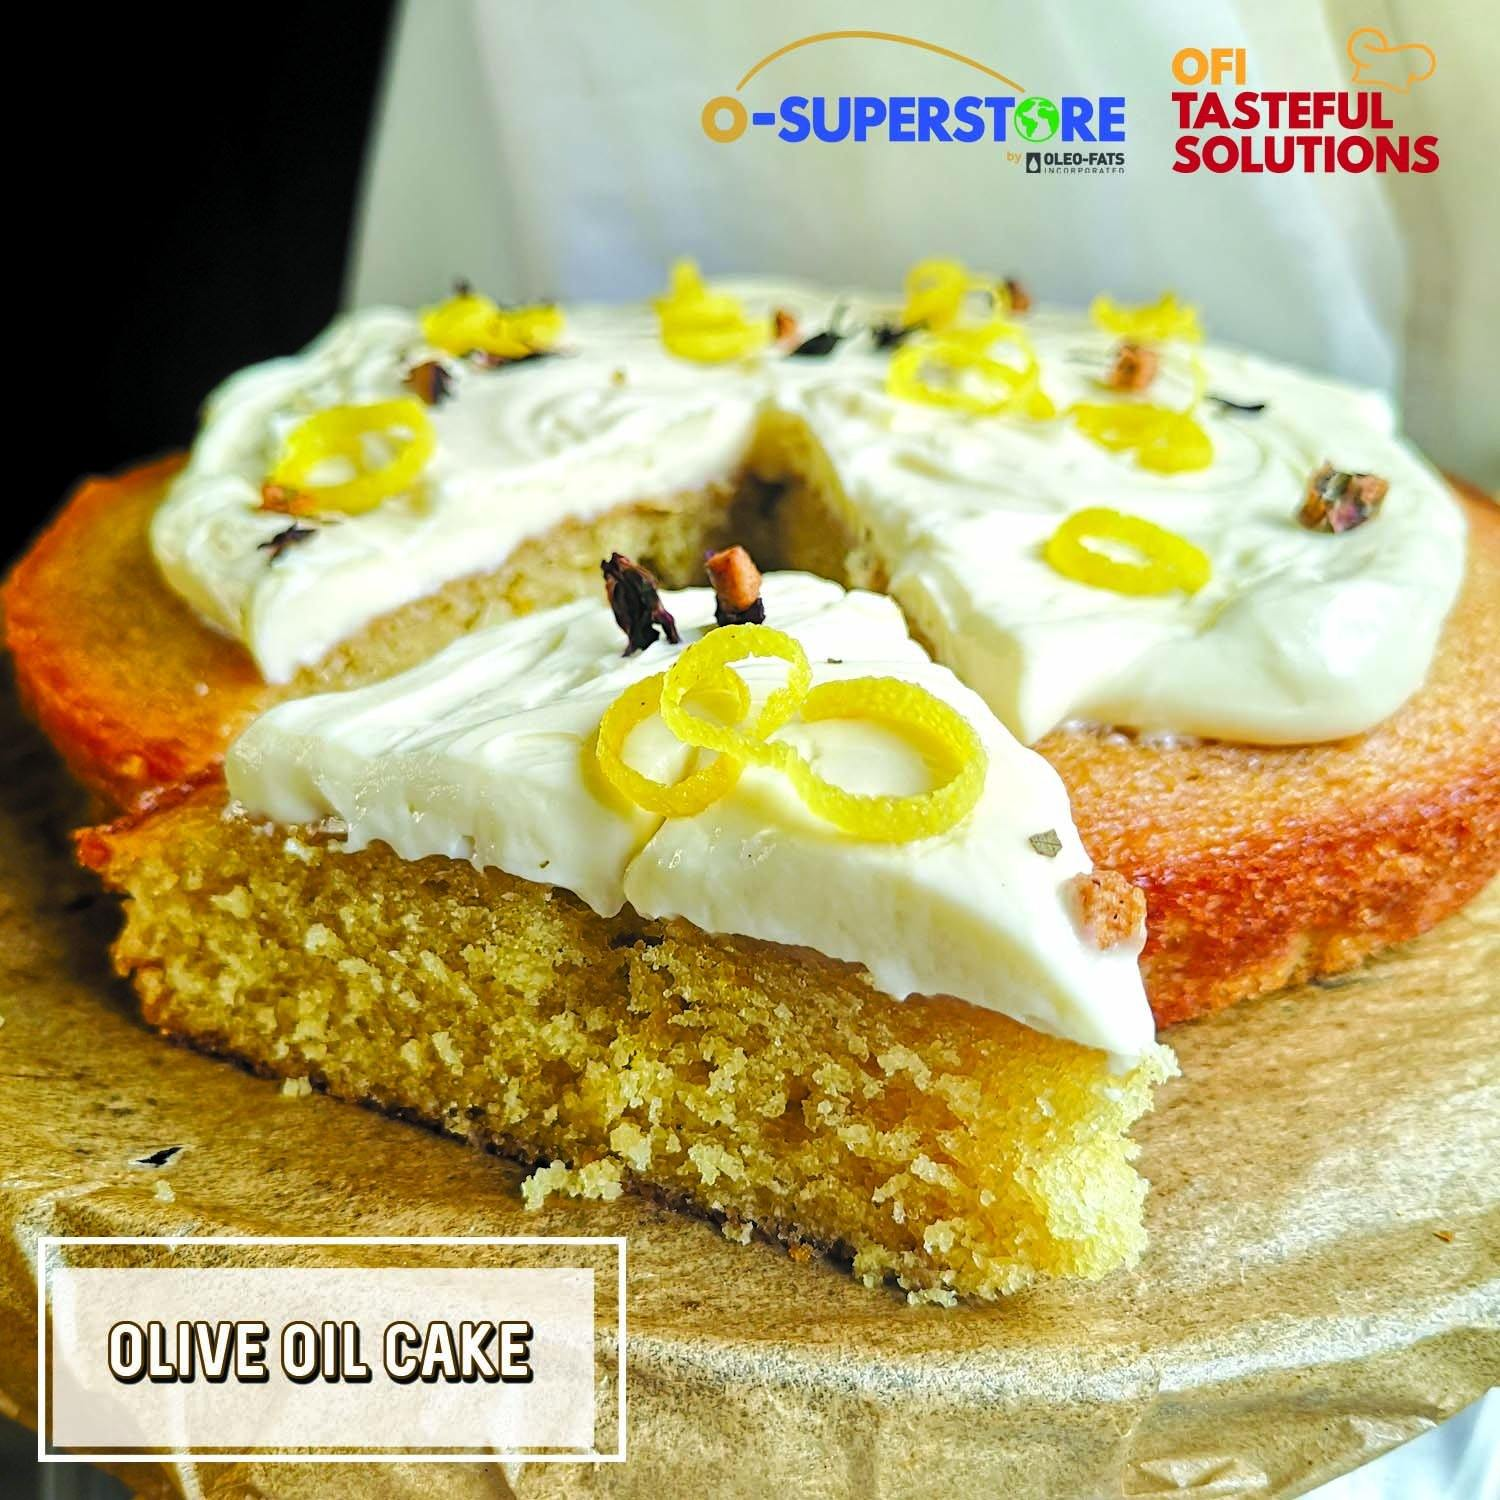 Olive Oil Cake - O-SUPERSTORE